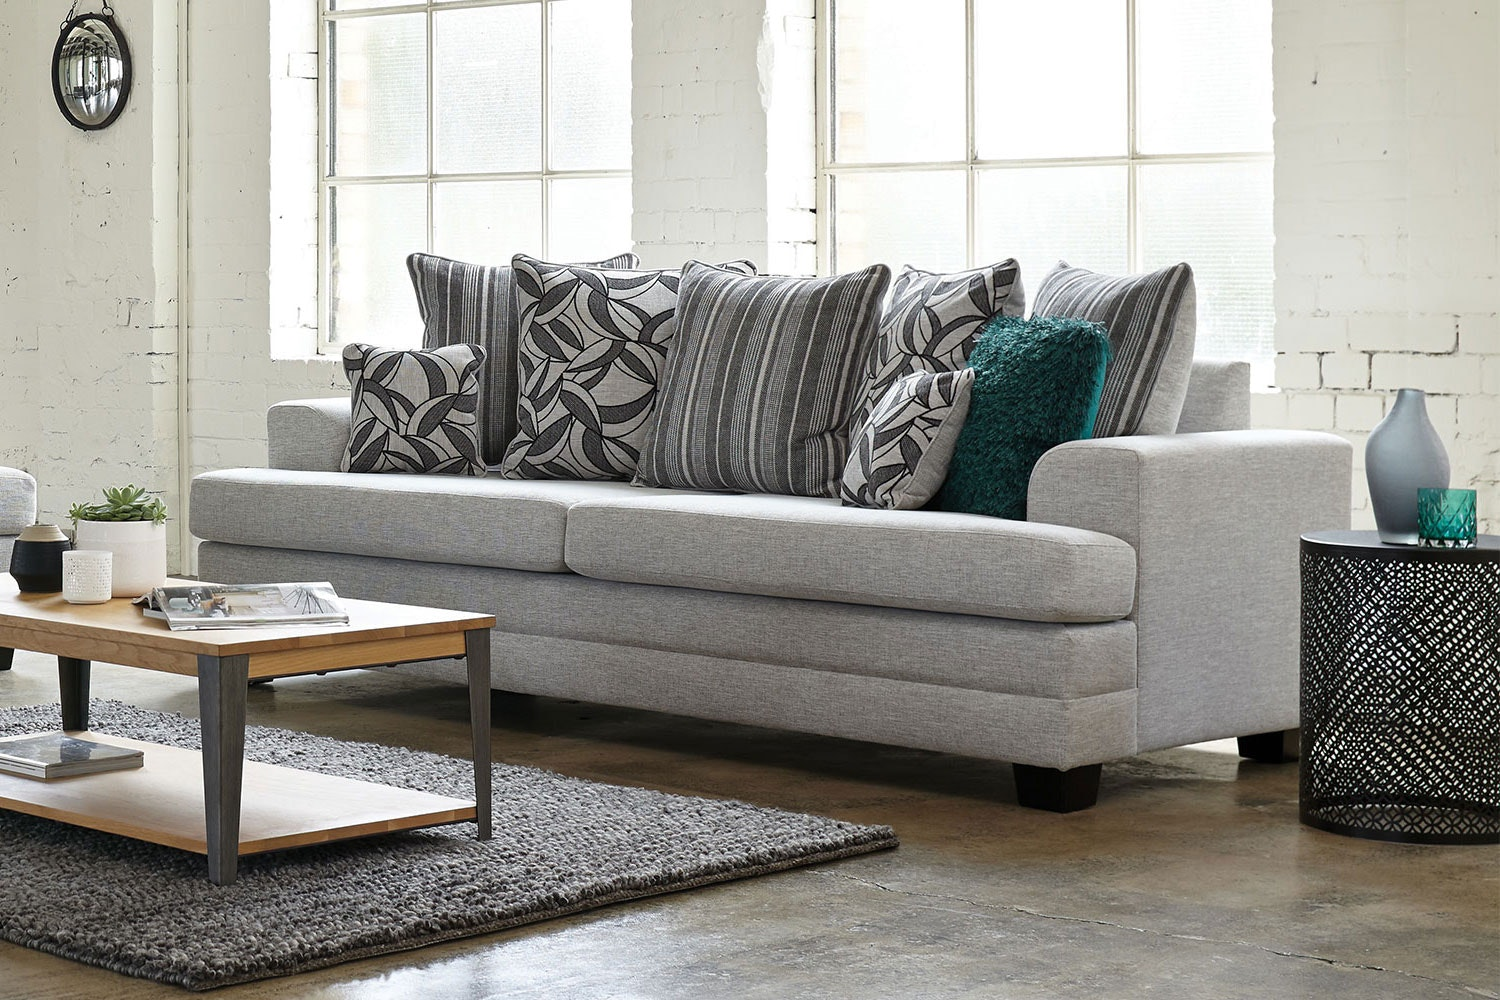 Evolution 3 Seater Fabric Sofa by White Rose Furniture